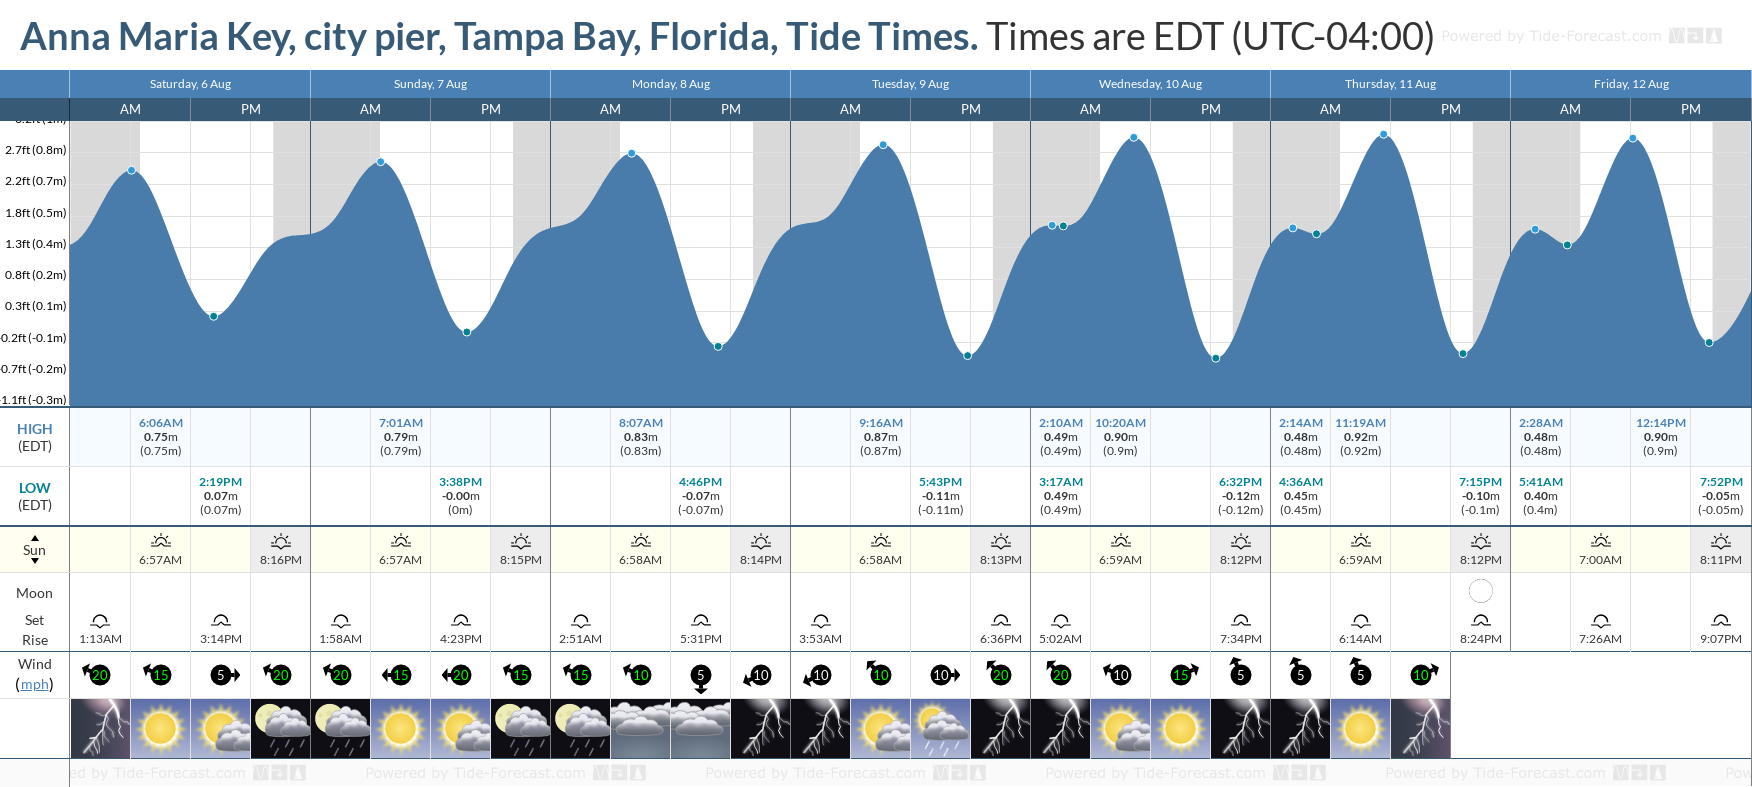 Anna Maria Key, city pier, Tampa Bay, Florida Tide Chart including high and low tide tide times for the next 7 days